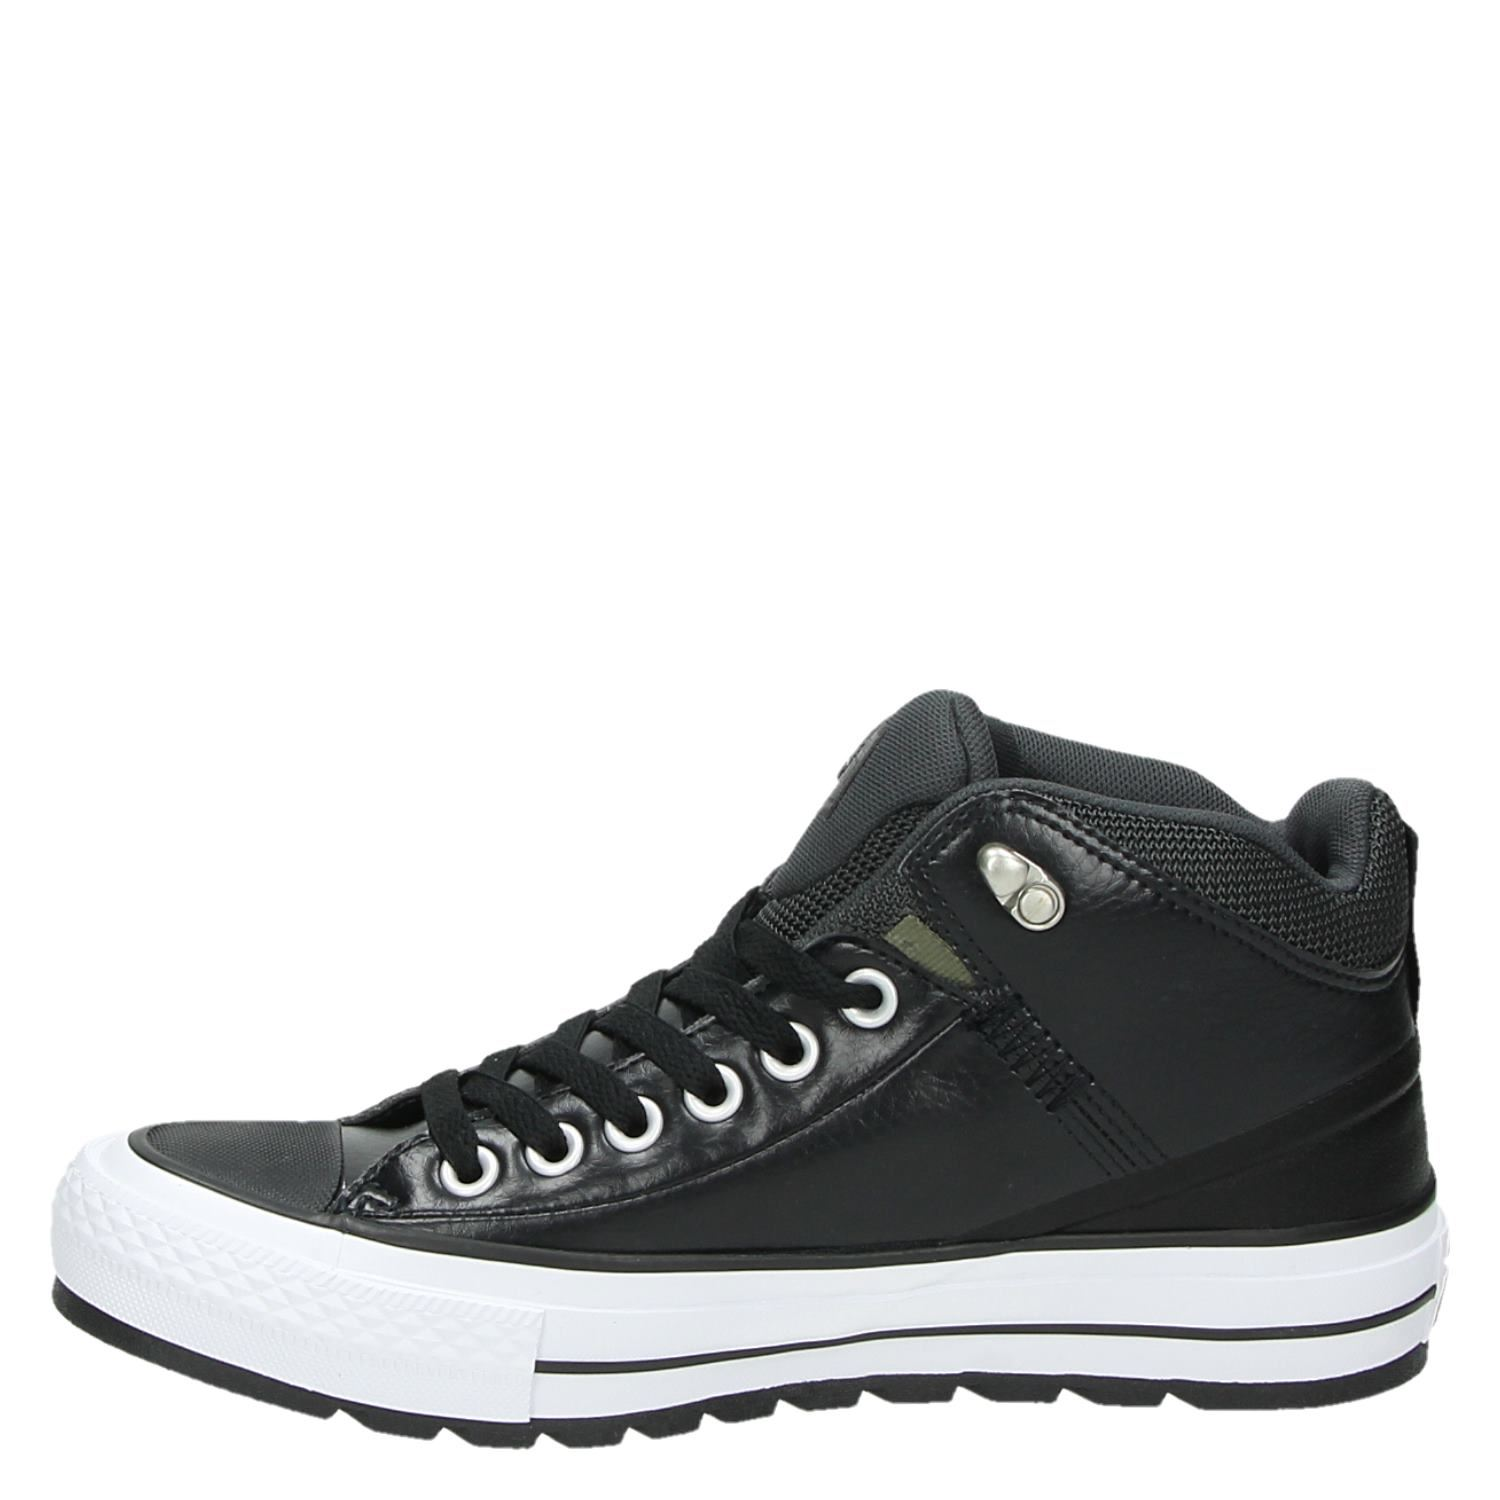 Hommes Dentelle Chaussures Converse bWzOmG